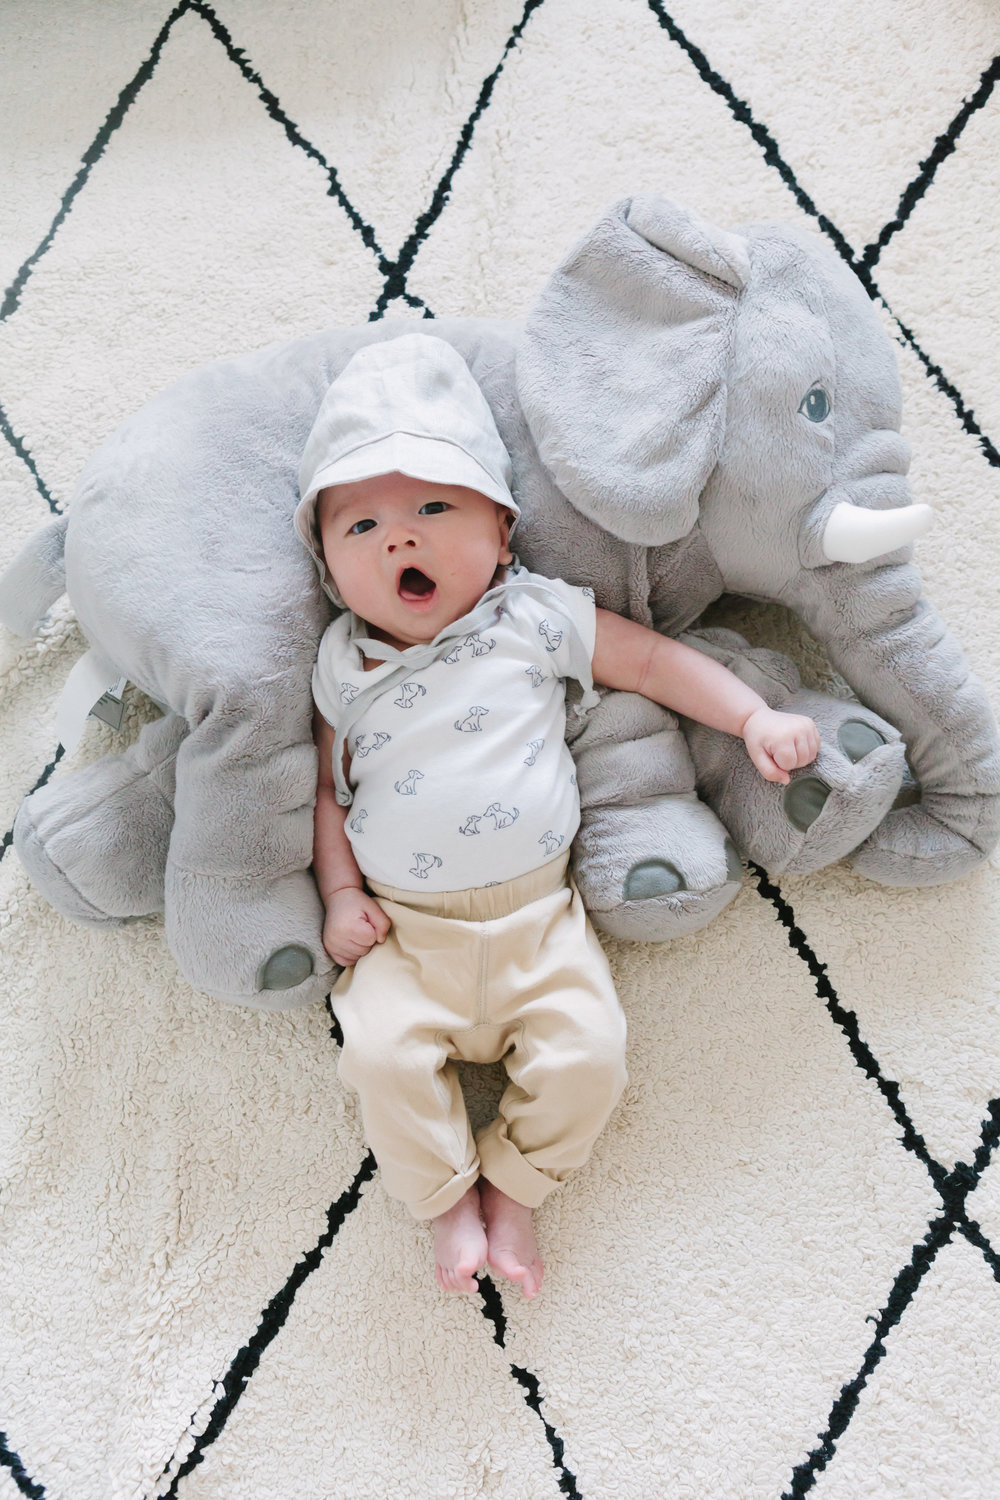 2018 Baby Chase August-116.jpg